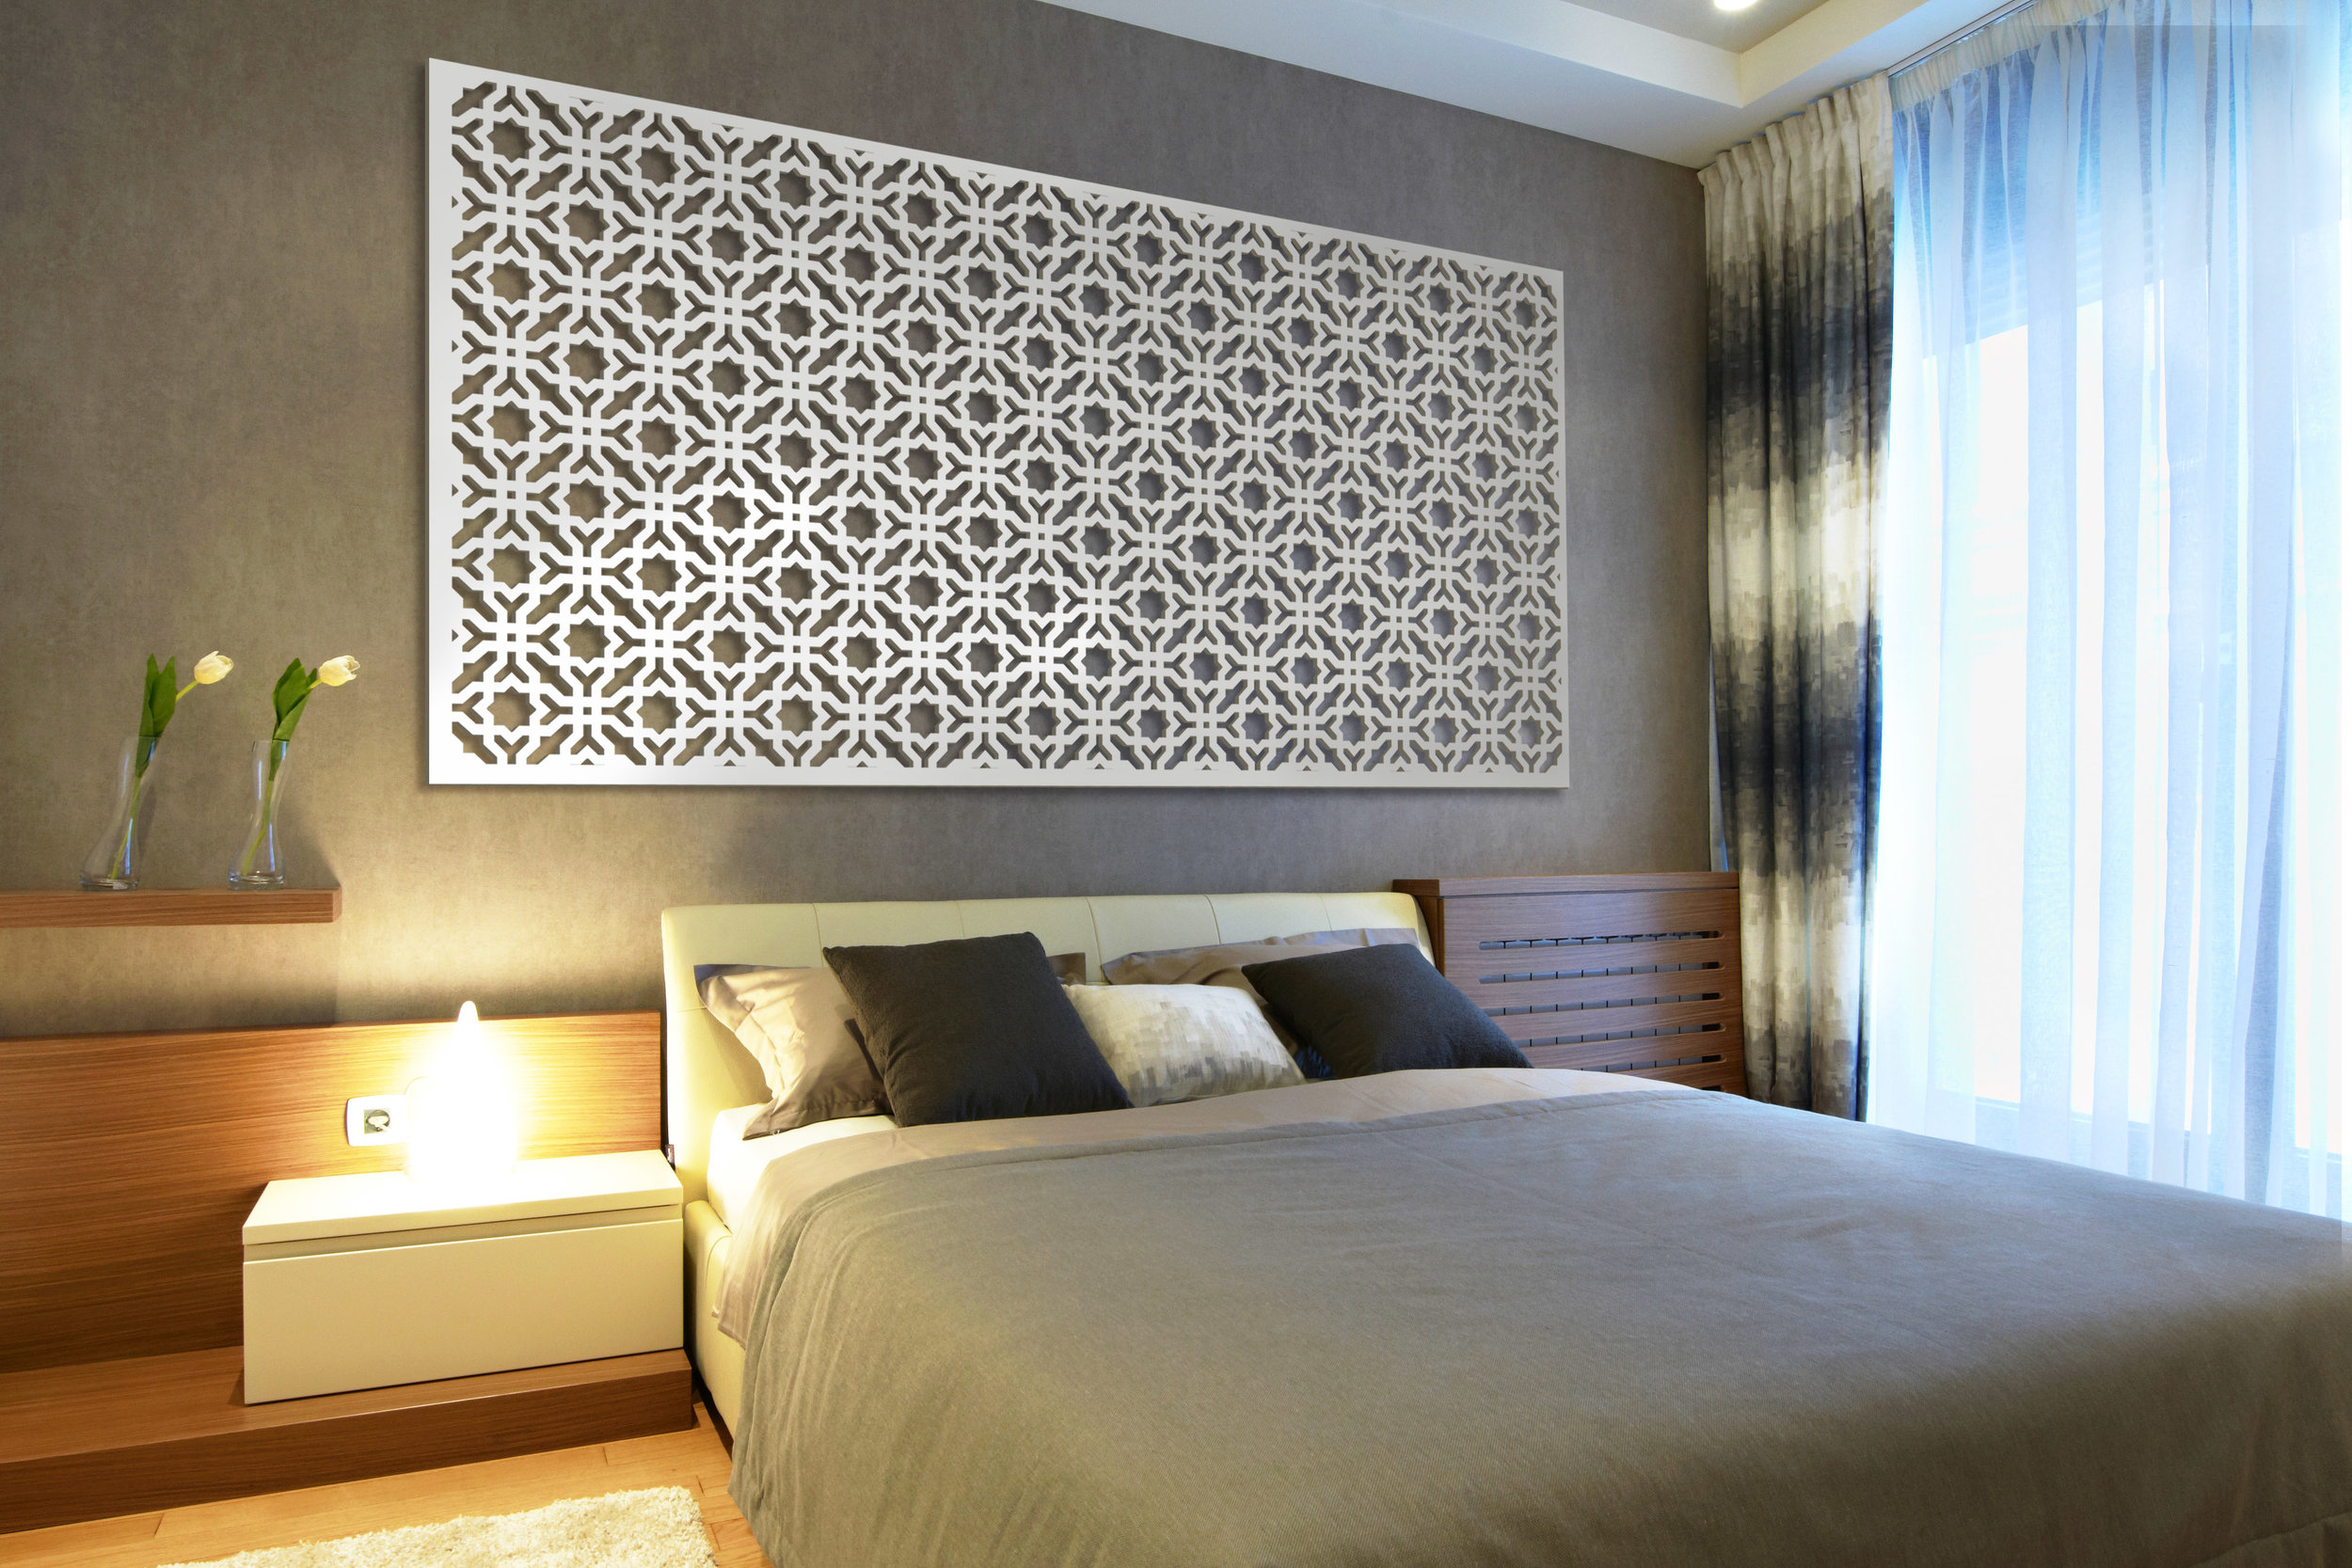 Installation Rendering C   Wiseman Star decorative hotel wall panel - painted